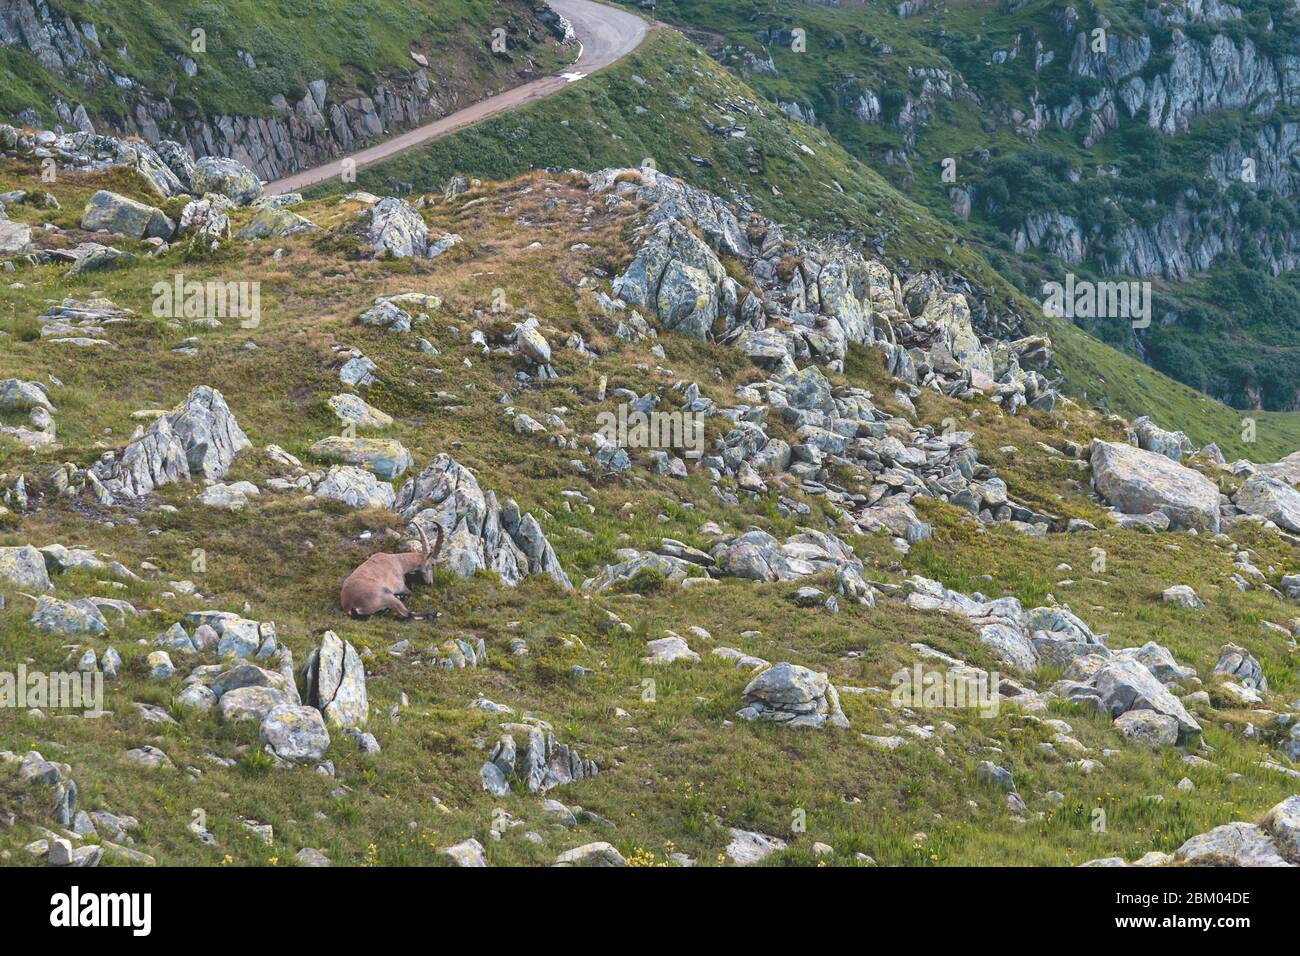 an ibex in nature between grass and stones in the swiss alps near the nufenen pass. Wild animals at 2400 meters altitude. Nufenenpass, Obergoms Stock Photo